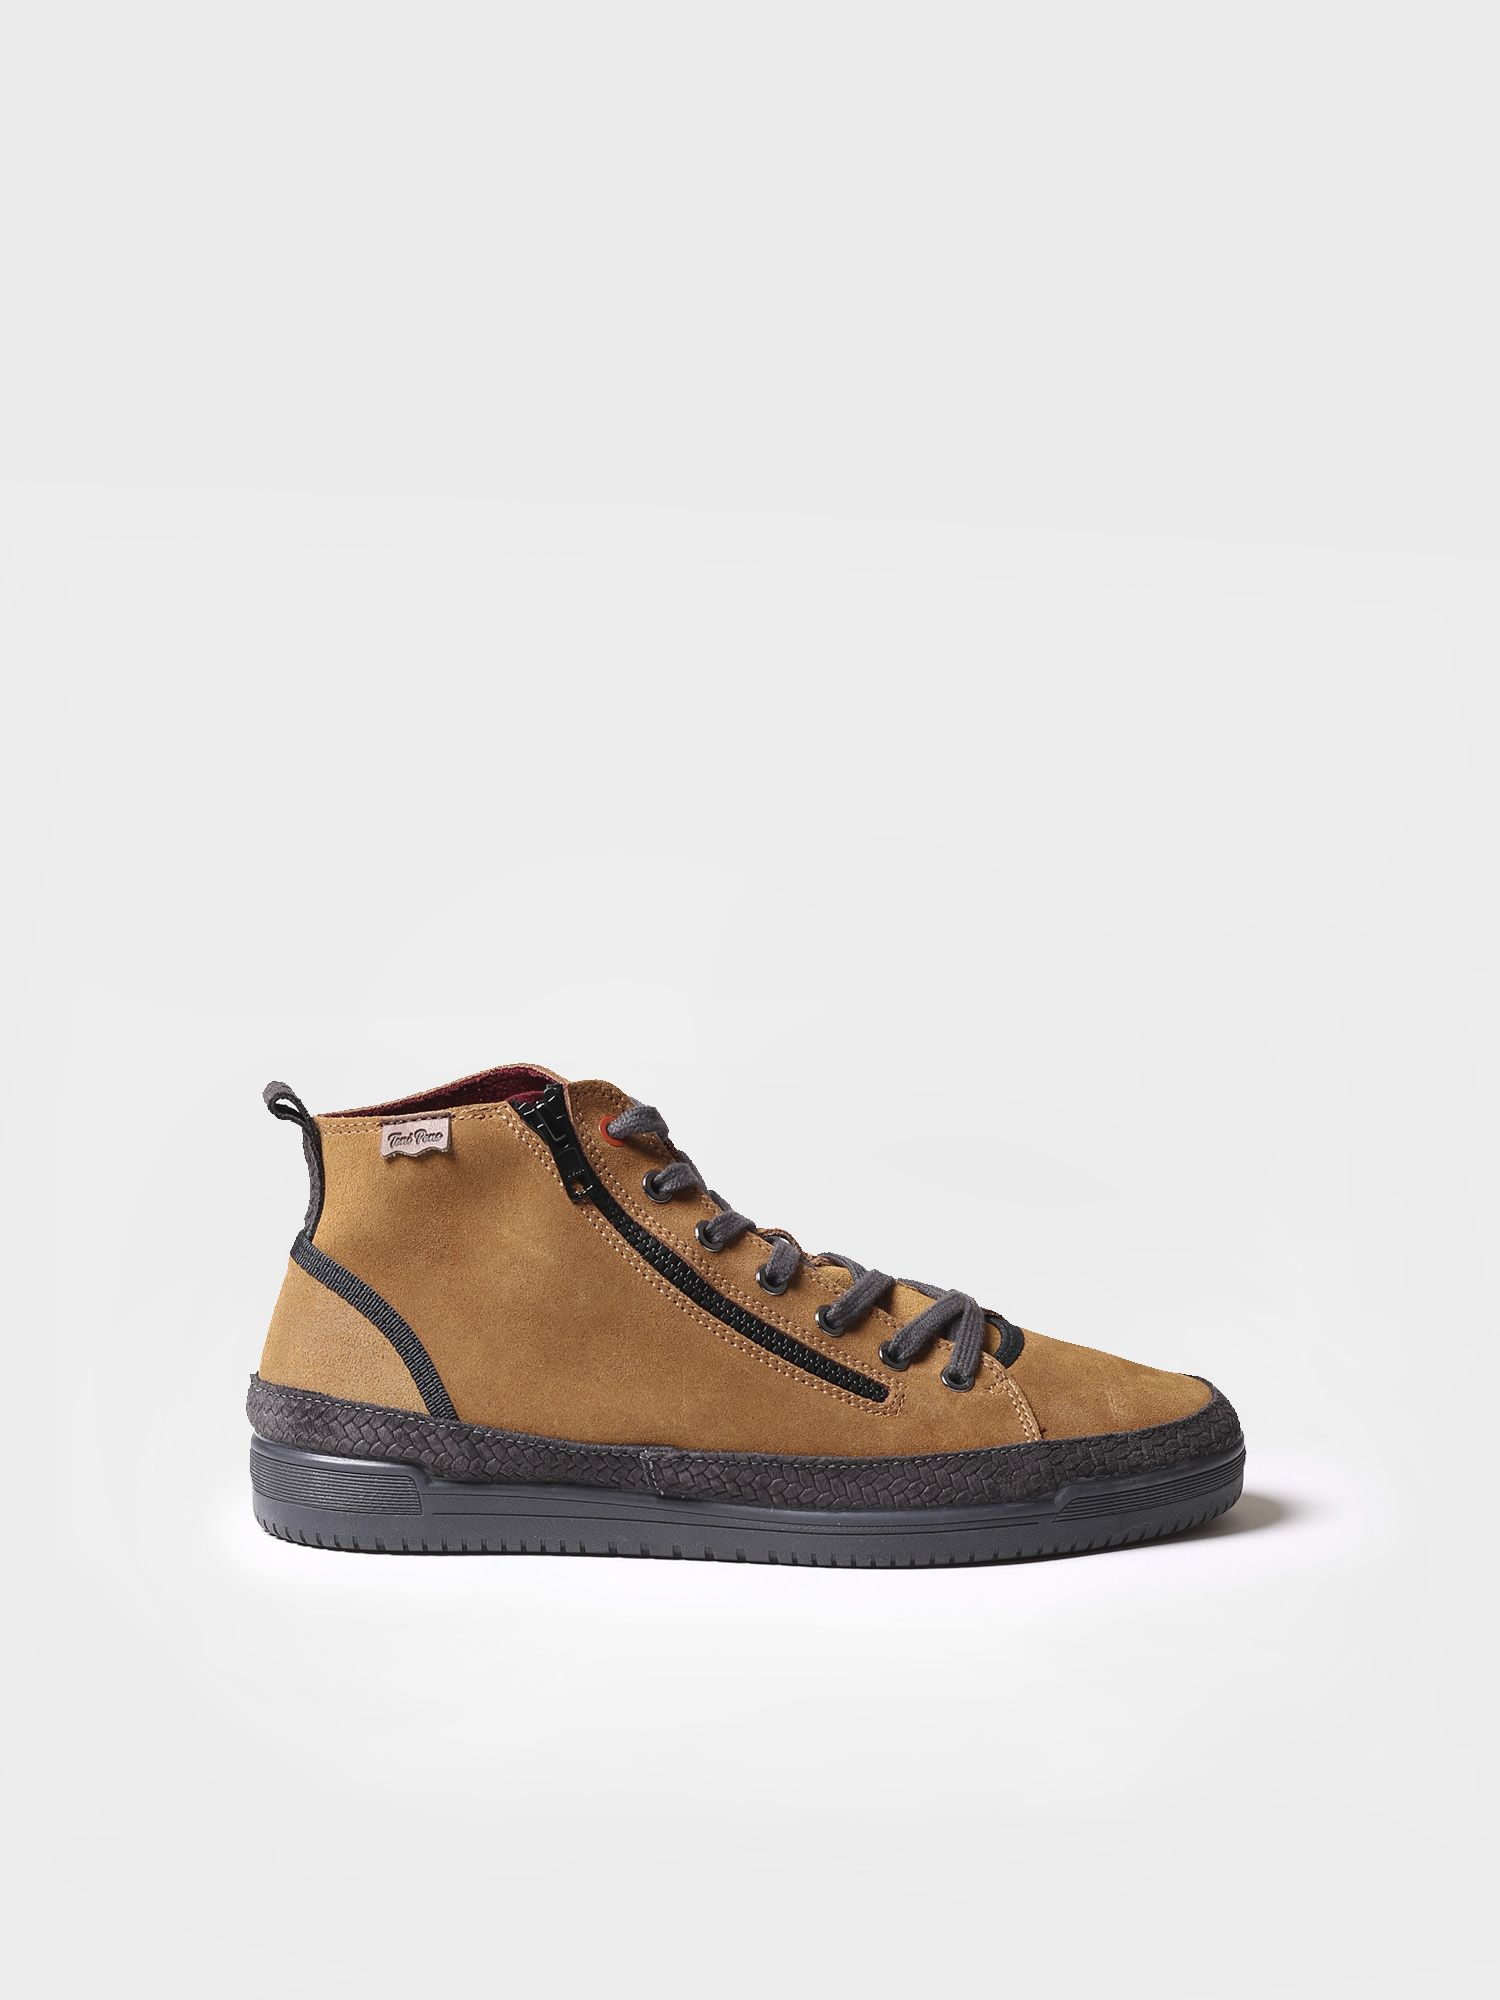 Sneaker for men made of suede - GREG-SY